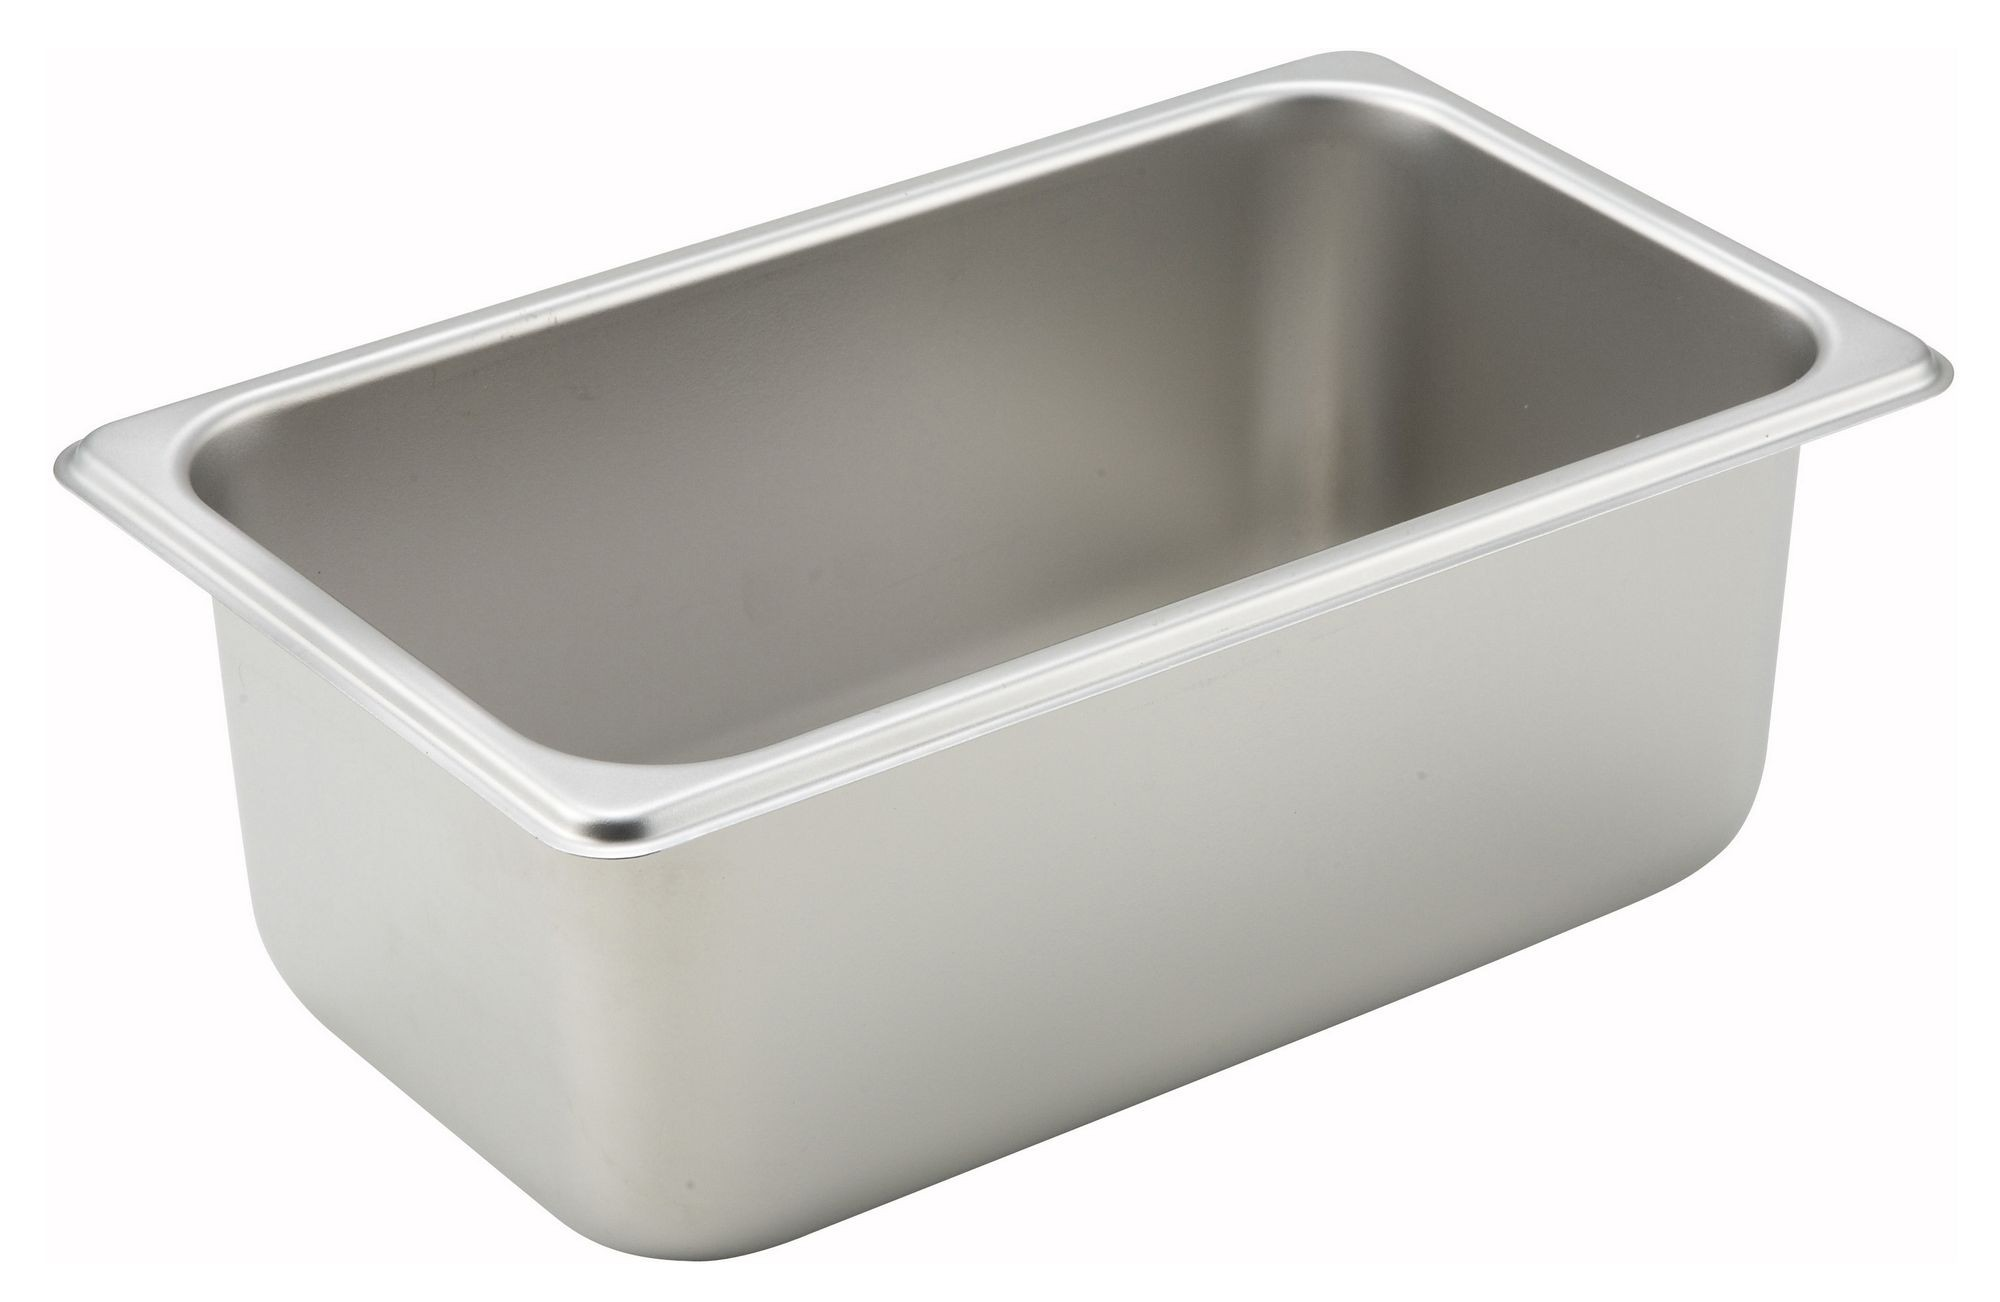 "Winco spq4 1/4 Size Standard Weight Steam Table Pan 4"" Deep"